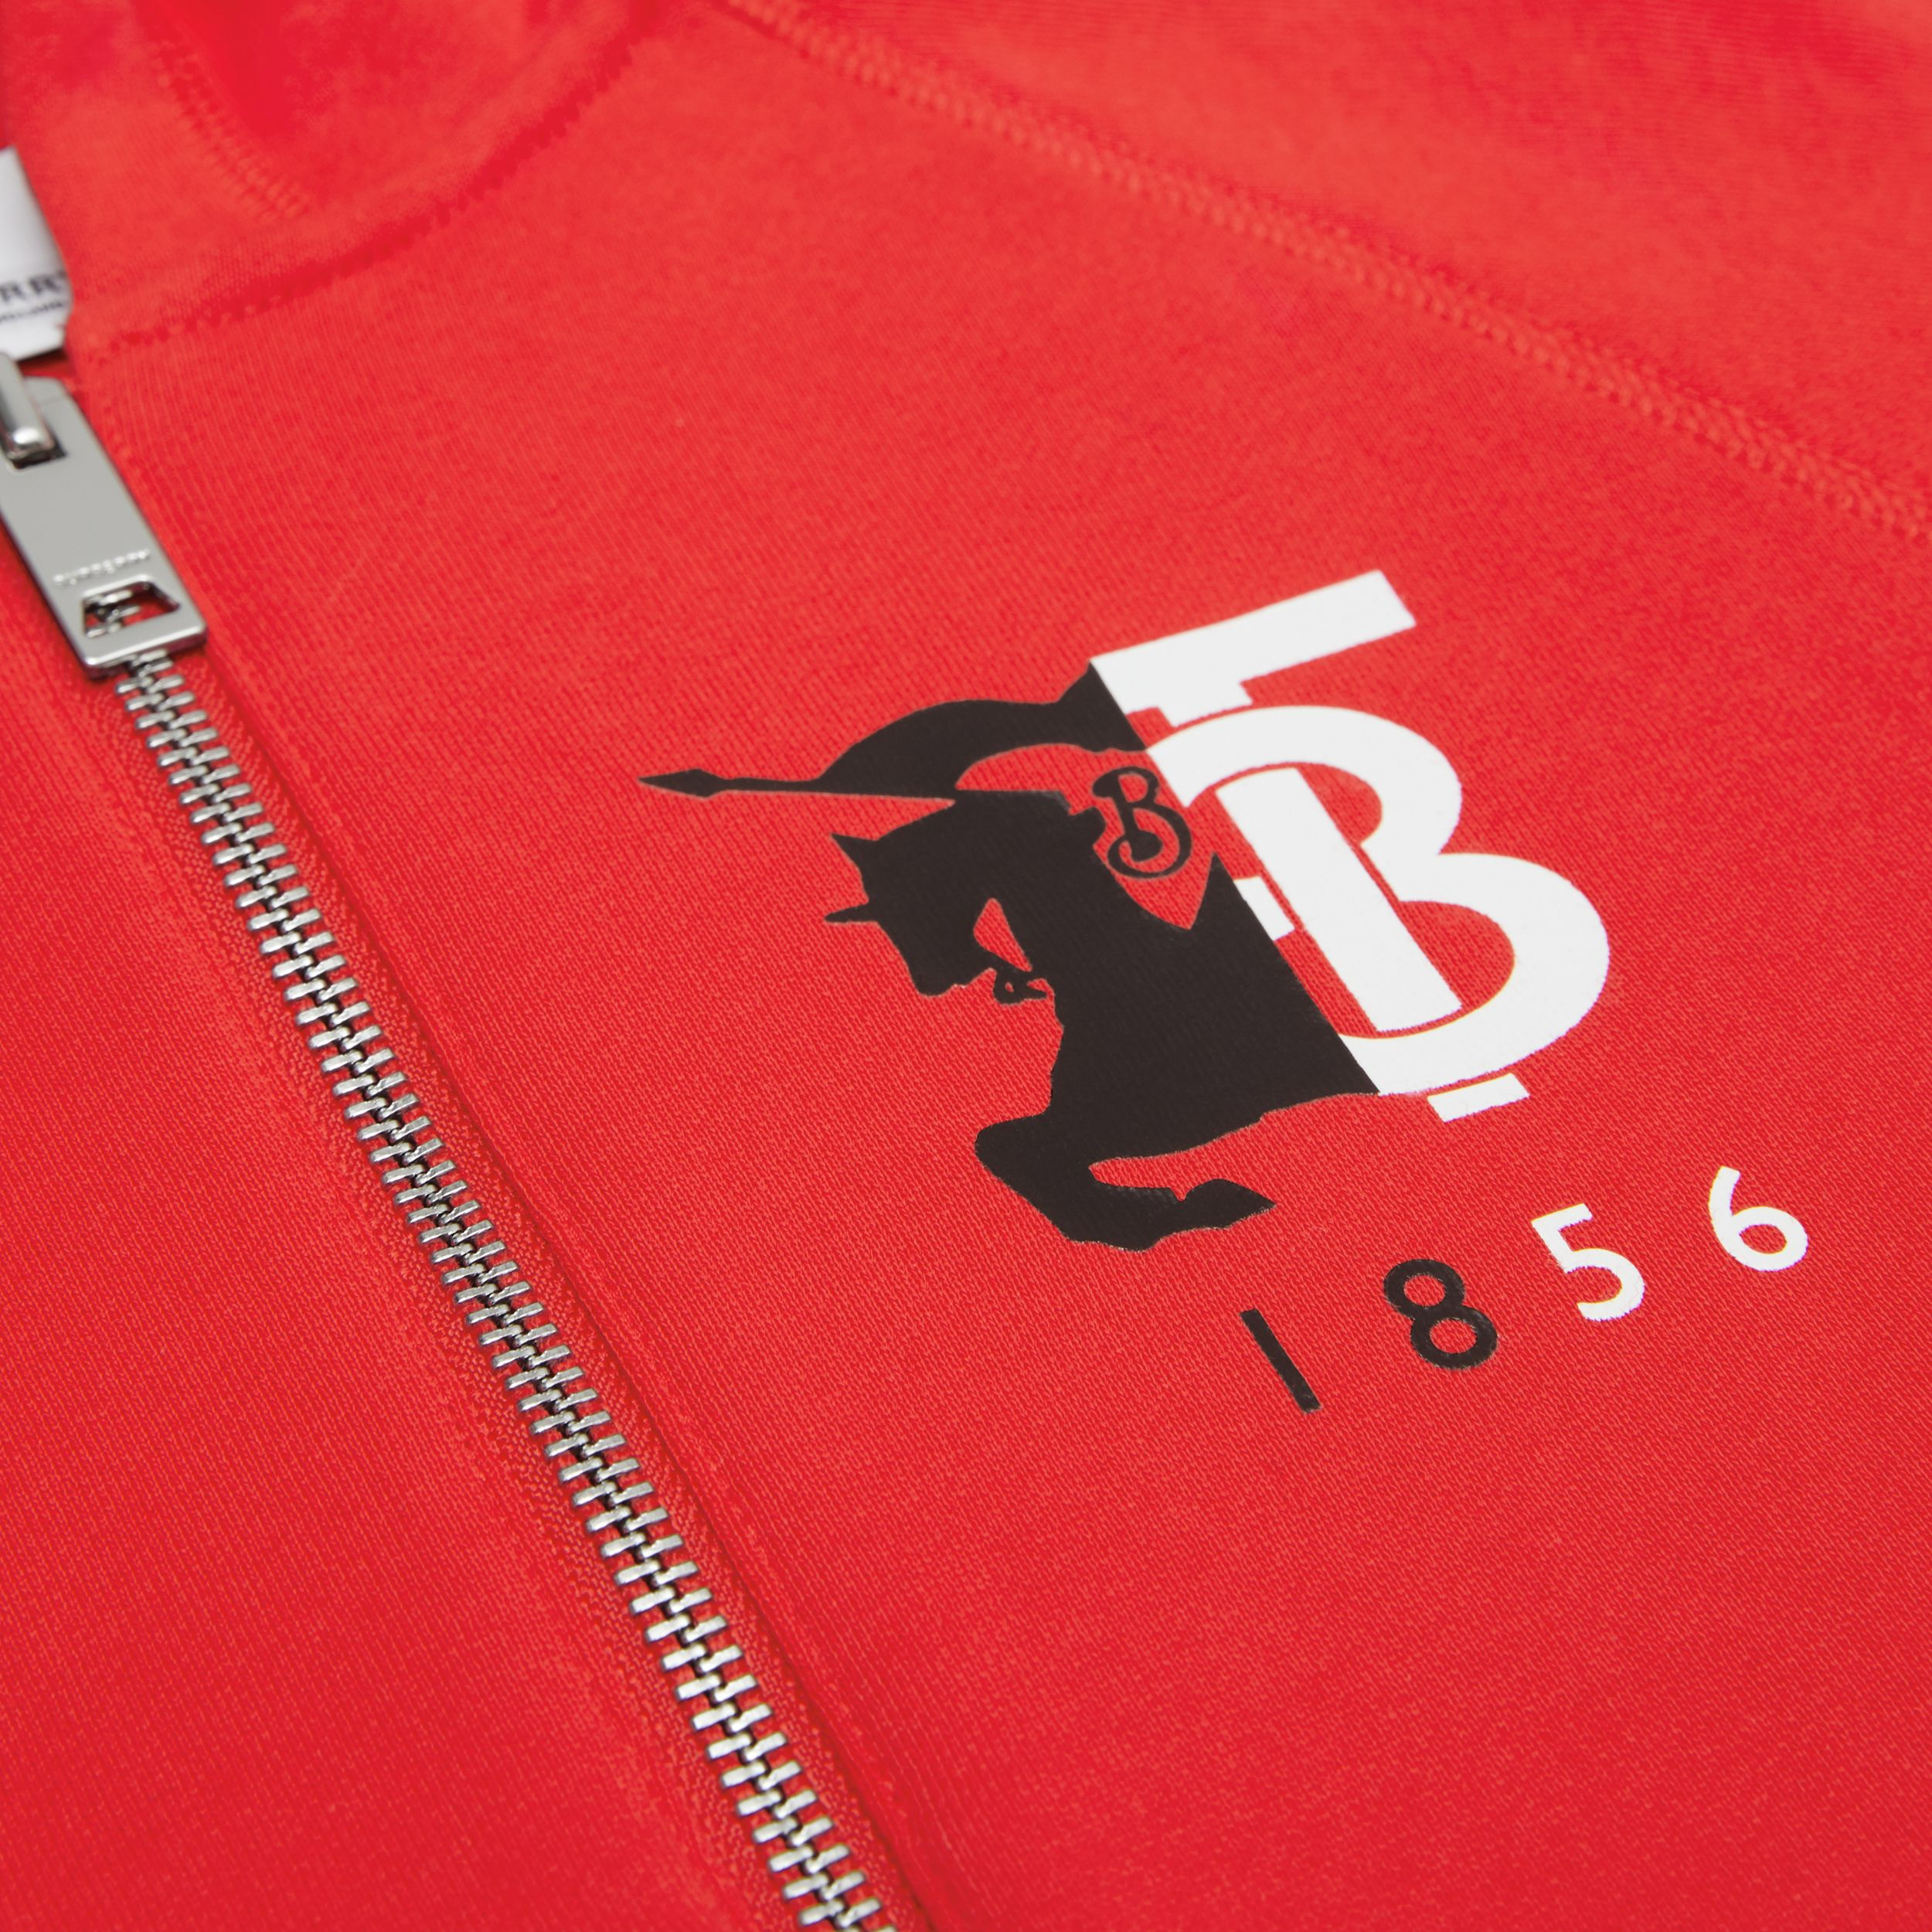 Contrast Logo Graphic Cotton Hooded Top in Bright Red | Burberry Hong Kong S.A.R. - 2